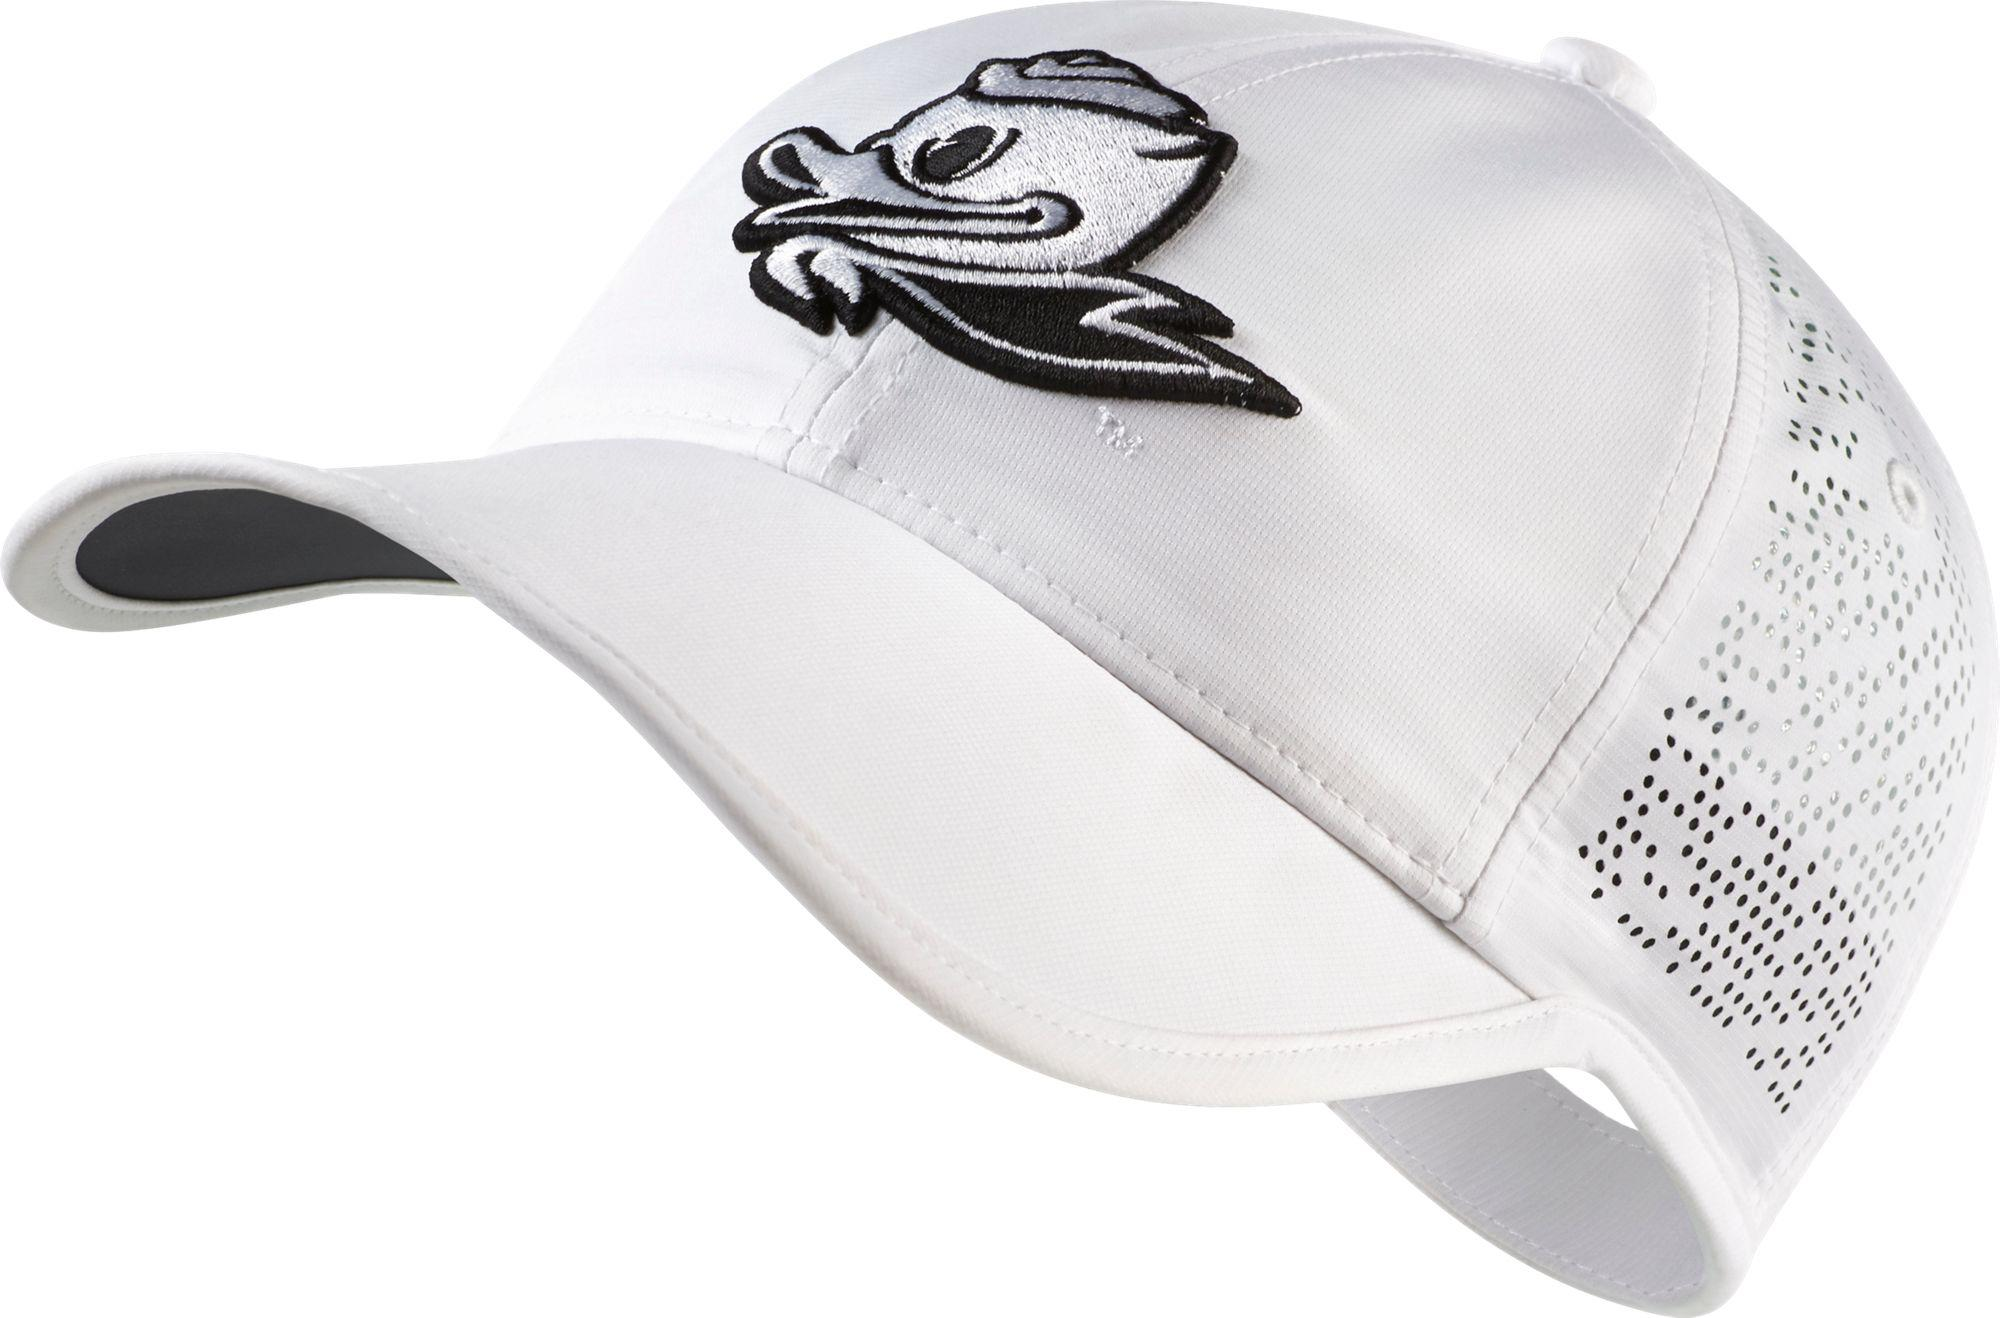 Lyst - Nike Oregon Ducks Perforated Golf Hat in White for Men 8ca9c308652